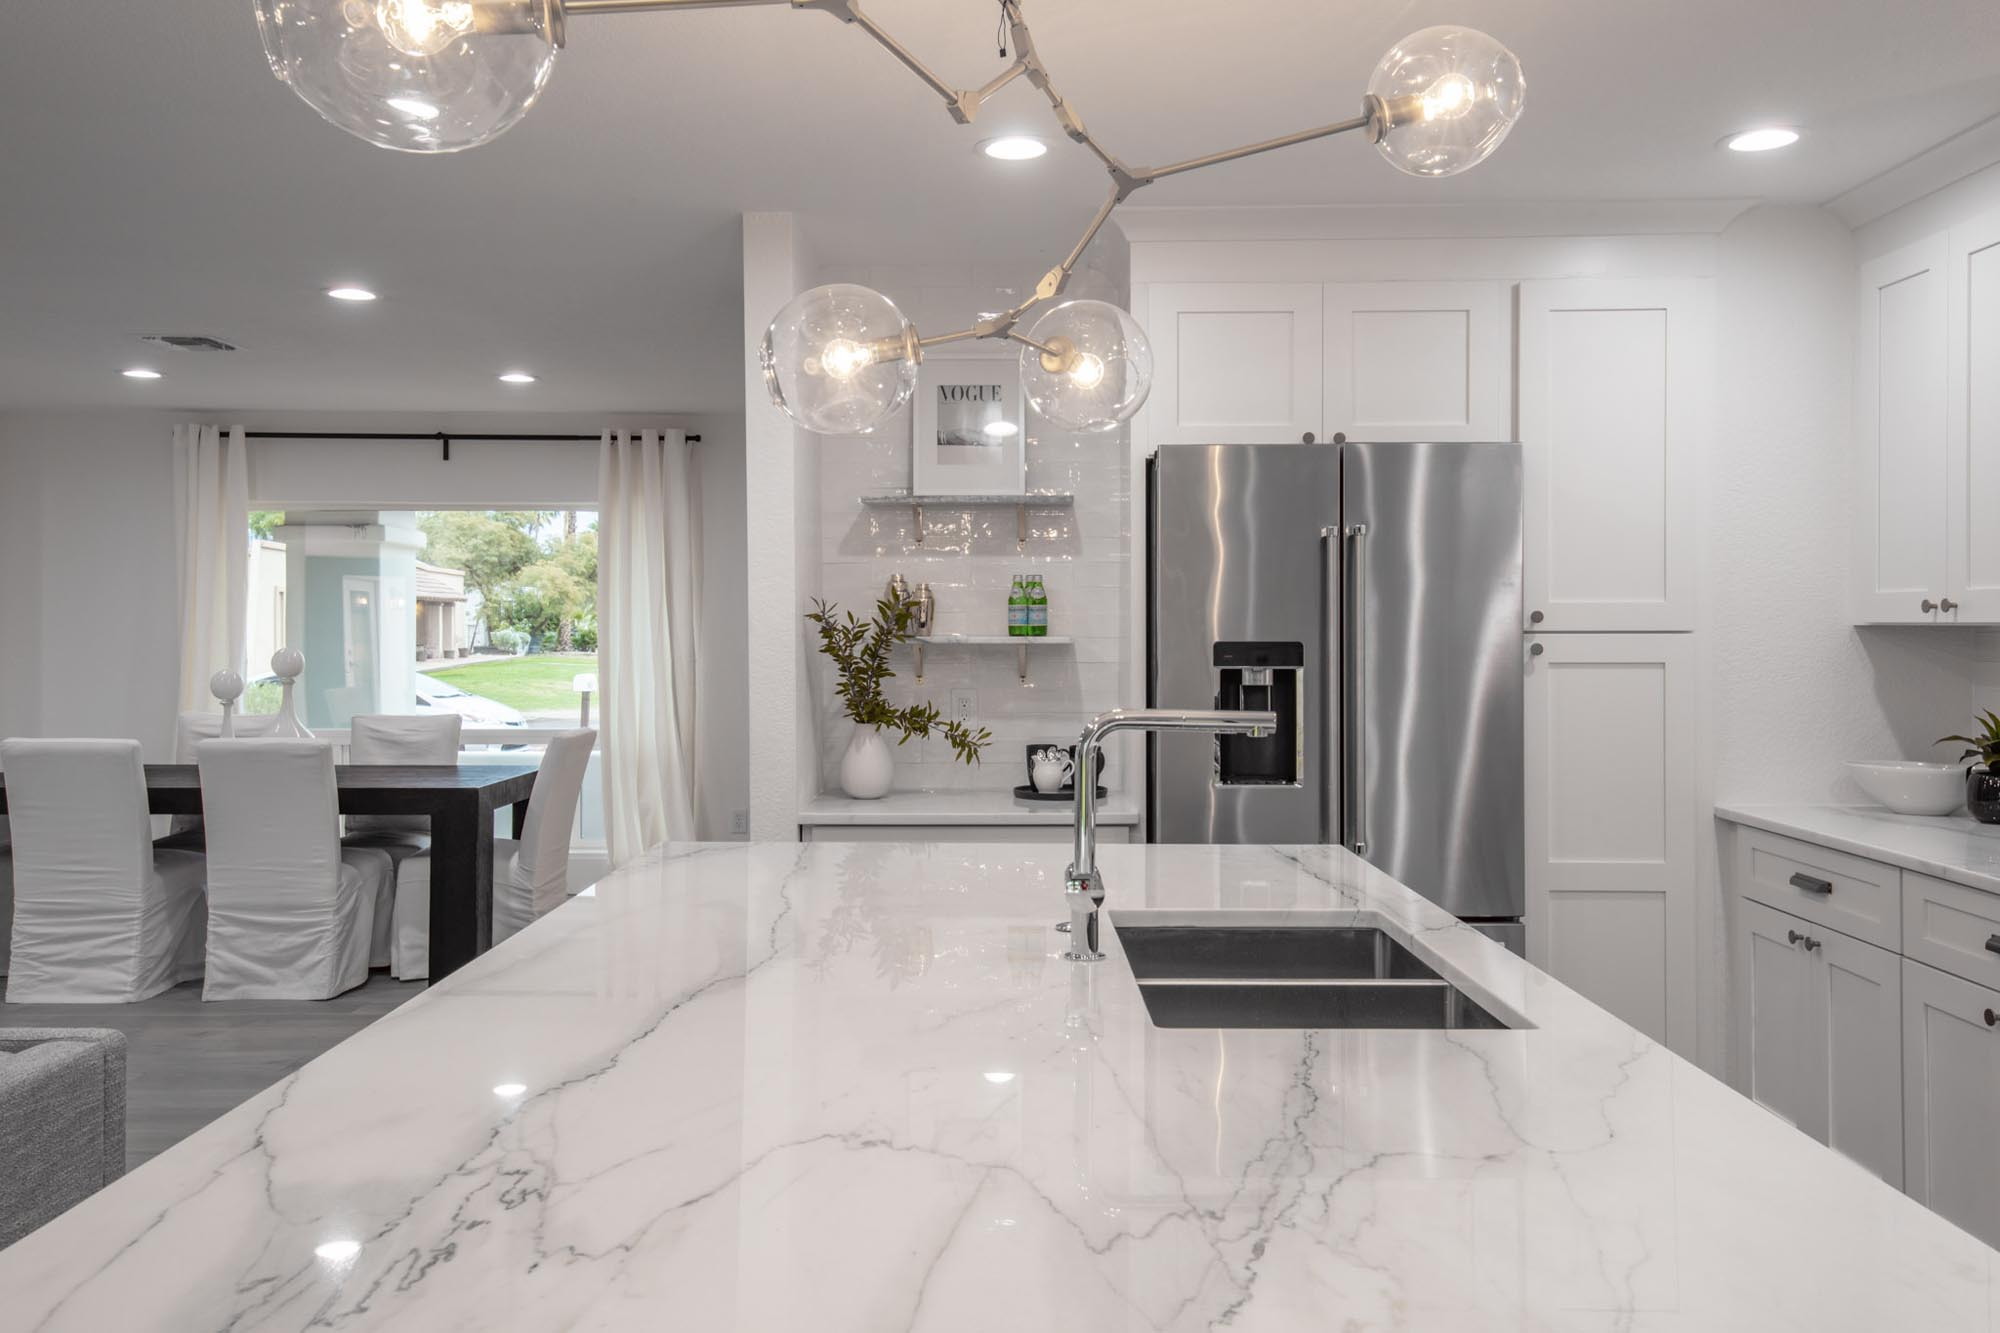 Kitchen white countertops island sink and faucet